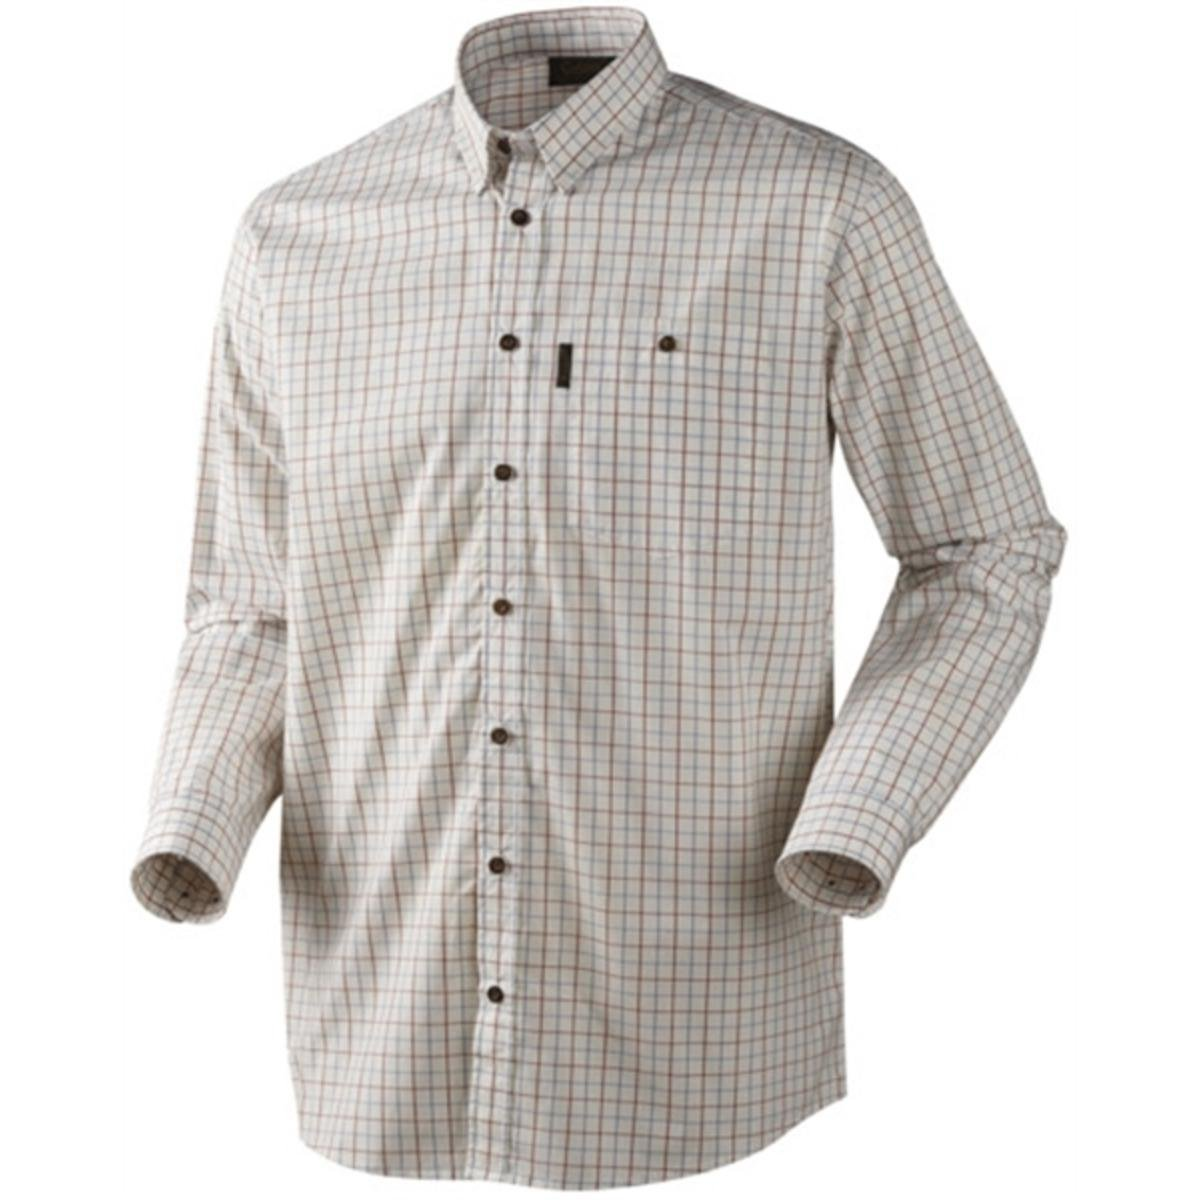 Seeland NIGEL Camisa de cuadros - Disponible en 3 Colores - m-3xl (TIRO / CAZA) - Verde, Large